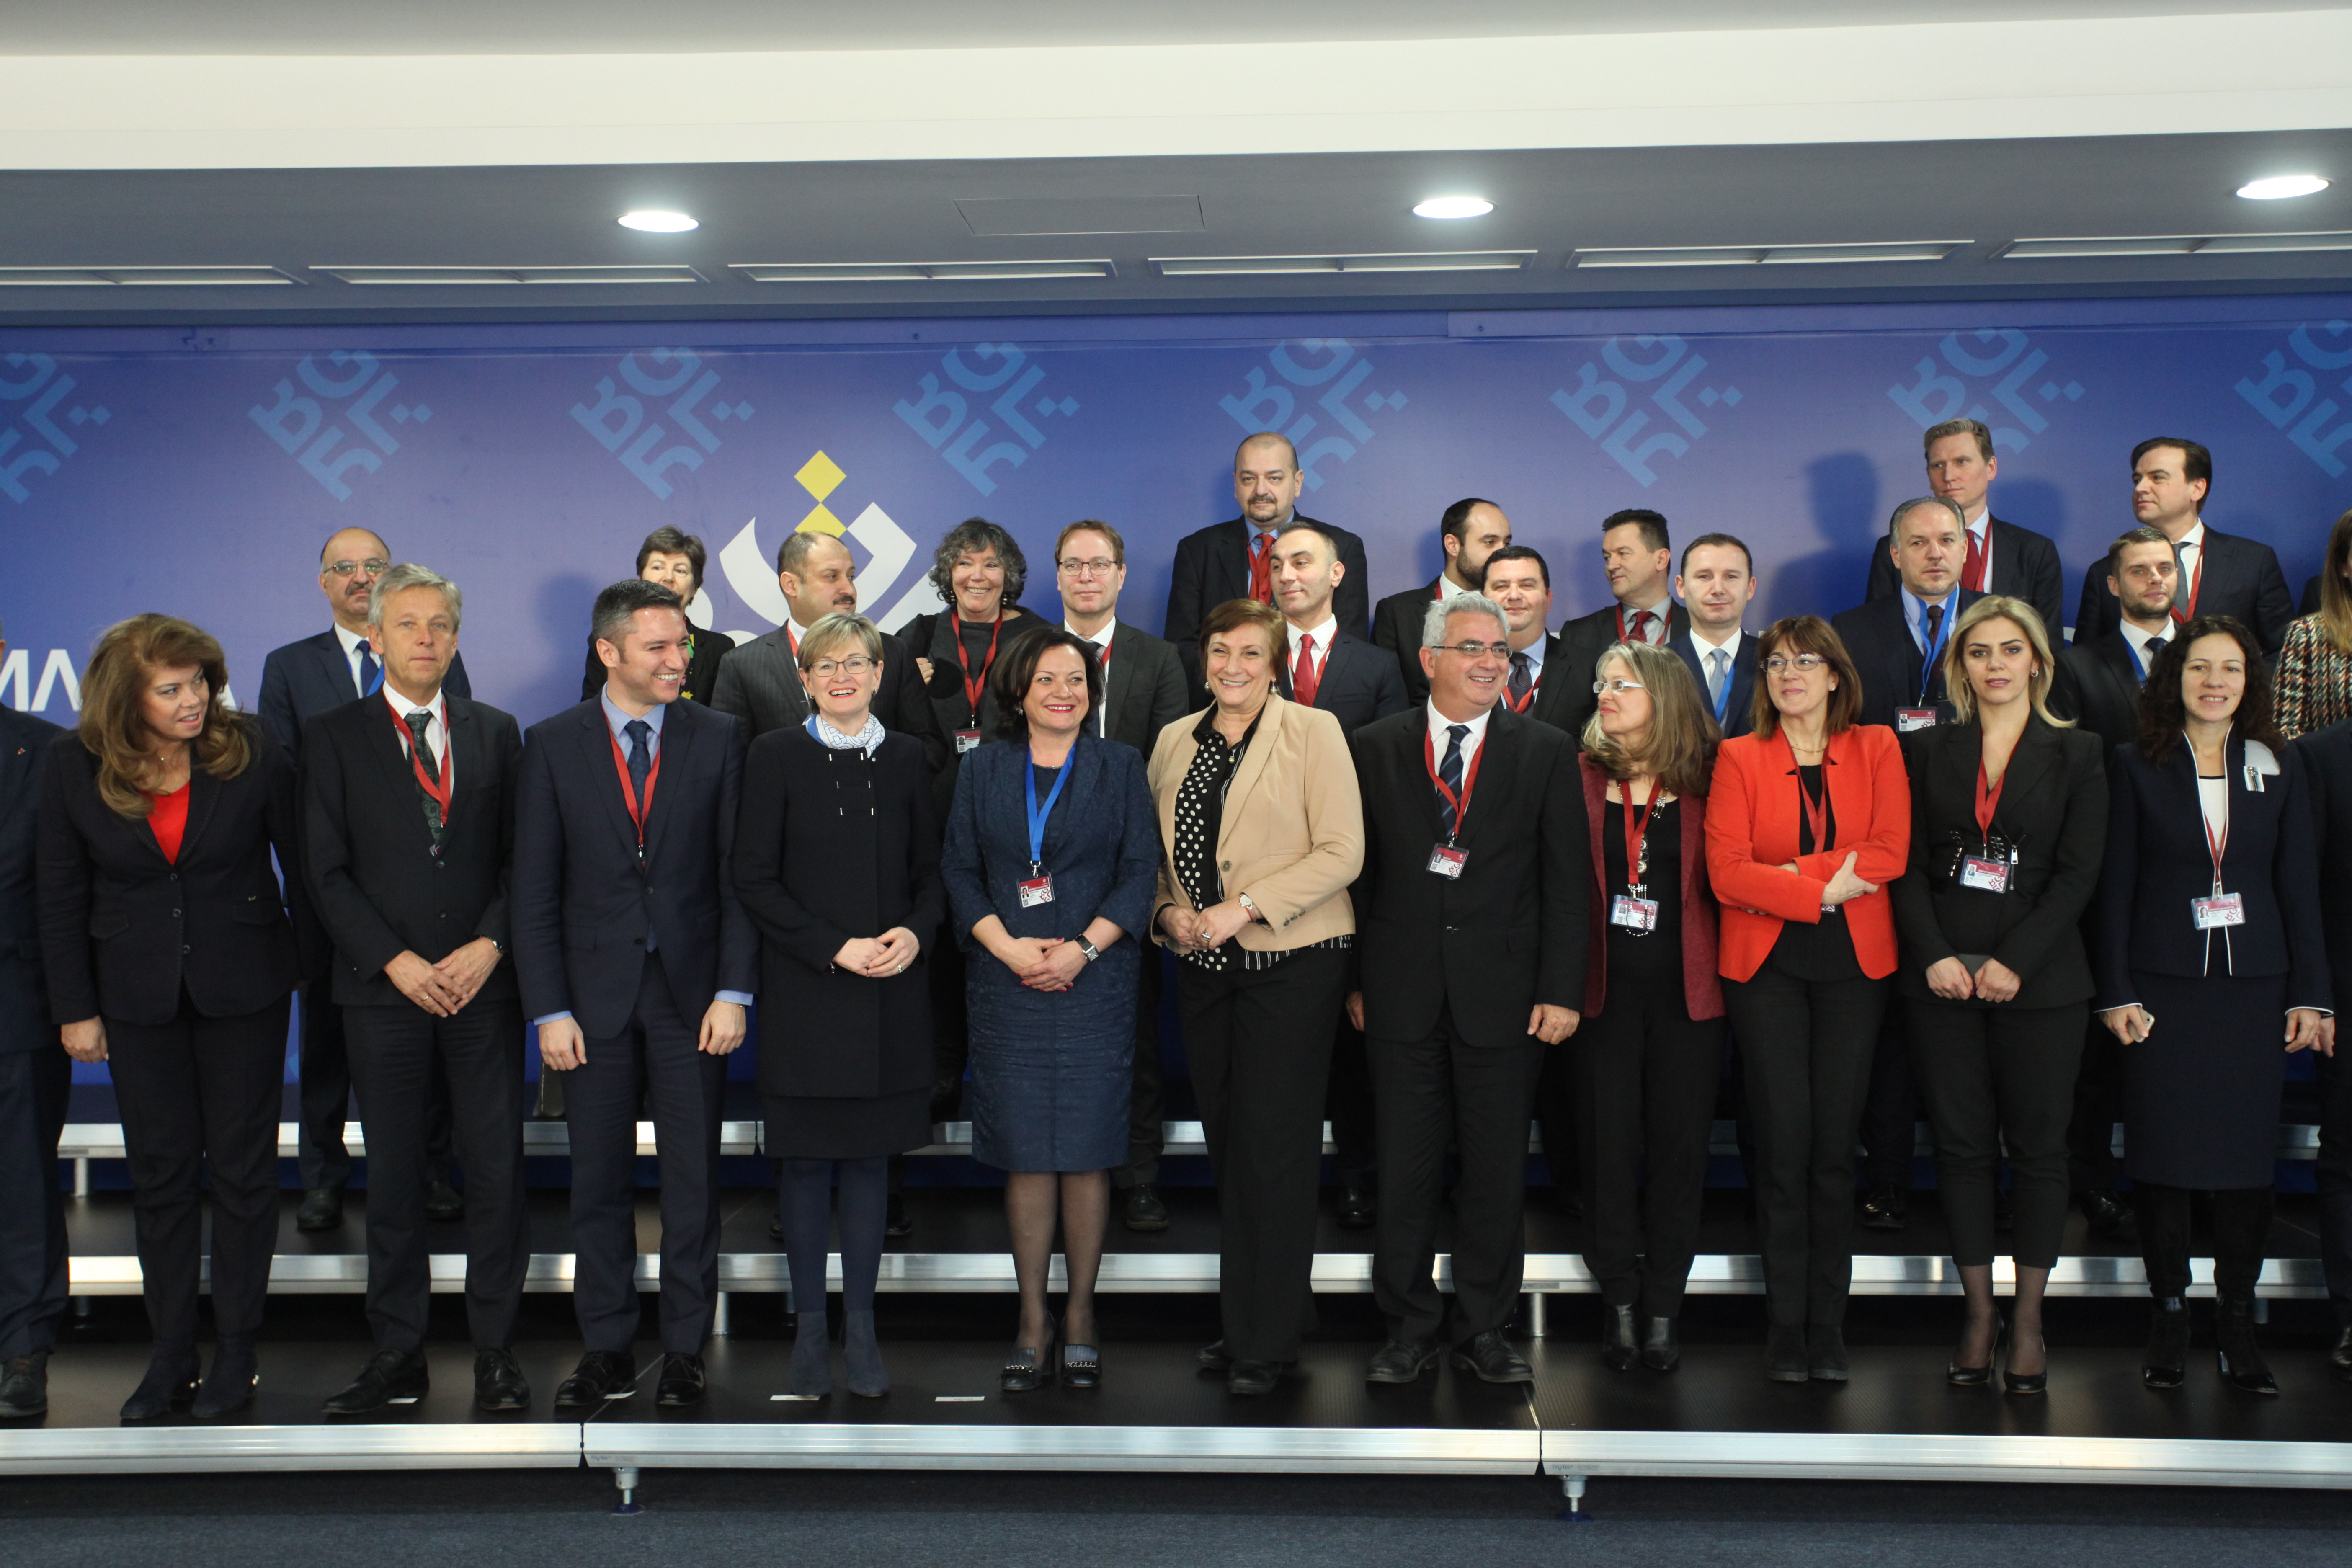 The future of the European Union discussed at the COSAC Chairpersons' meeting